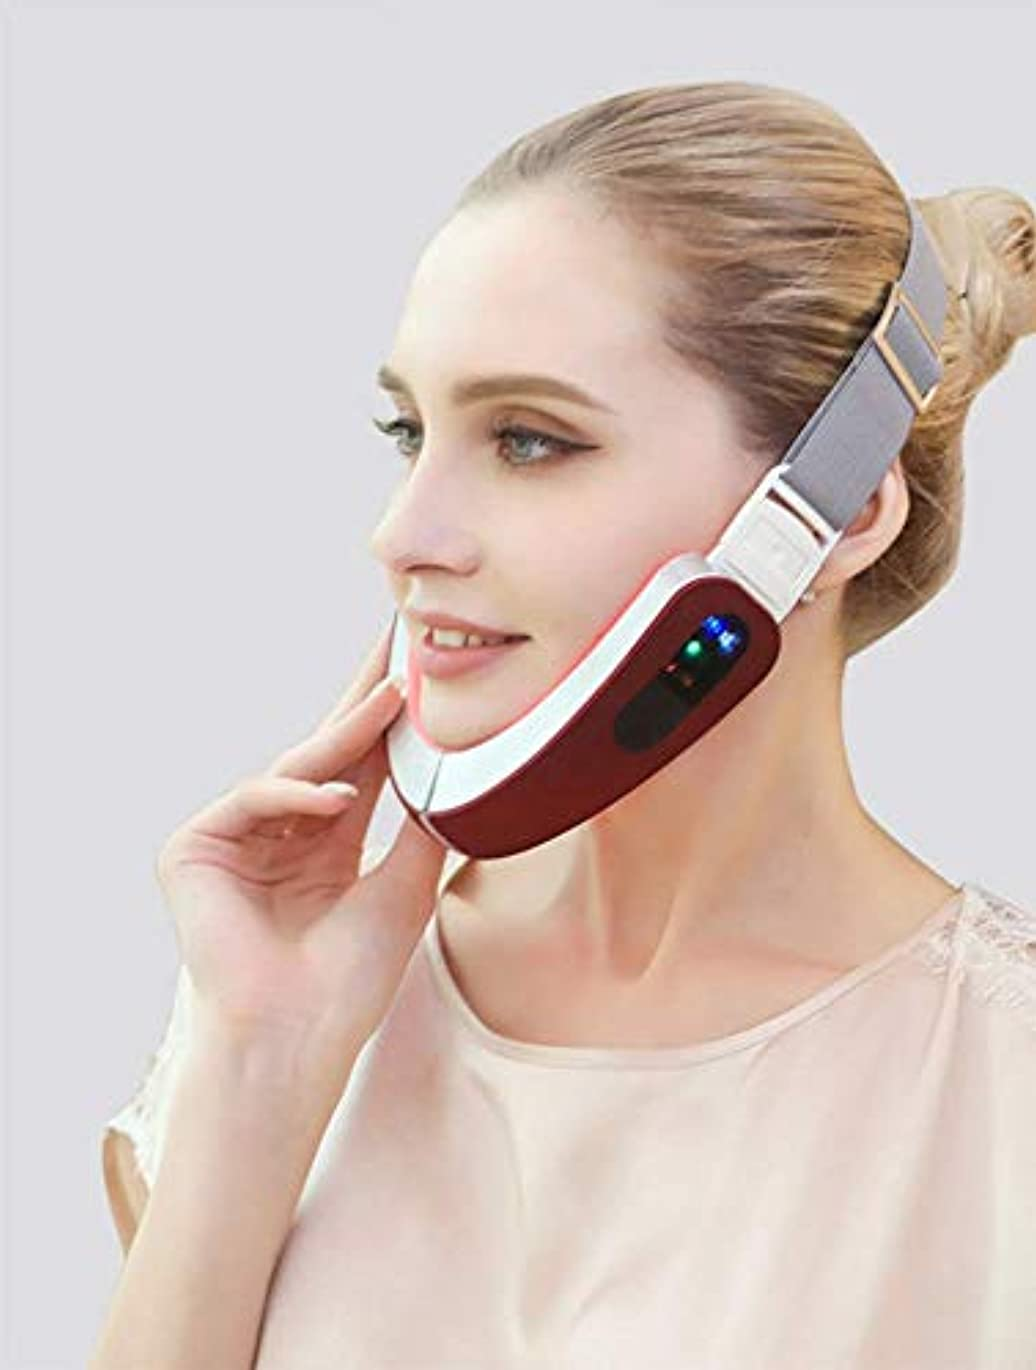 可塑性貞手のひらLquide Mart Voice Thin Face Artifact Small V Face Bandage Firming Facial Beauty Bar Rejuvenation Massage Instrument...